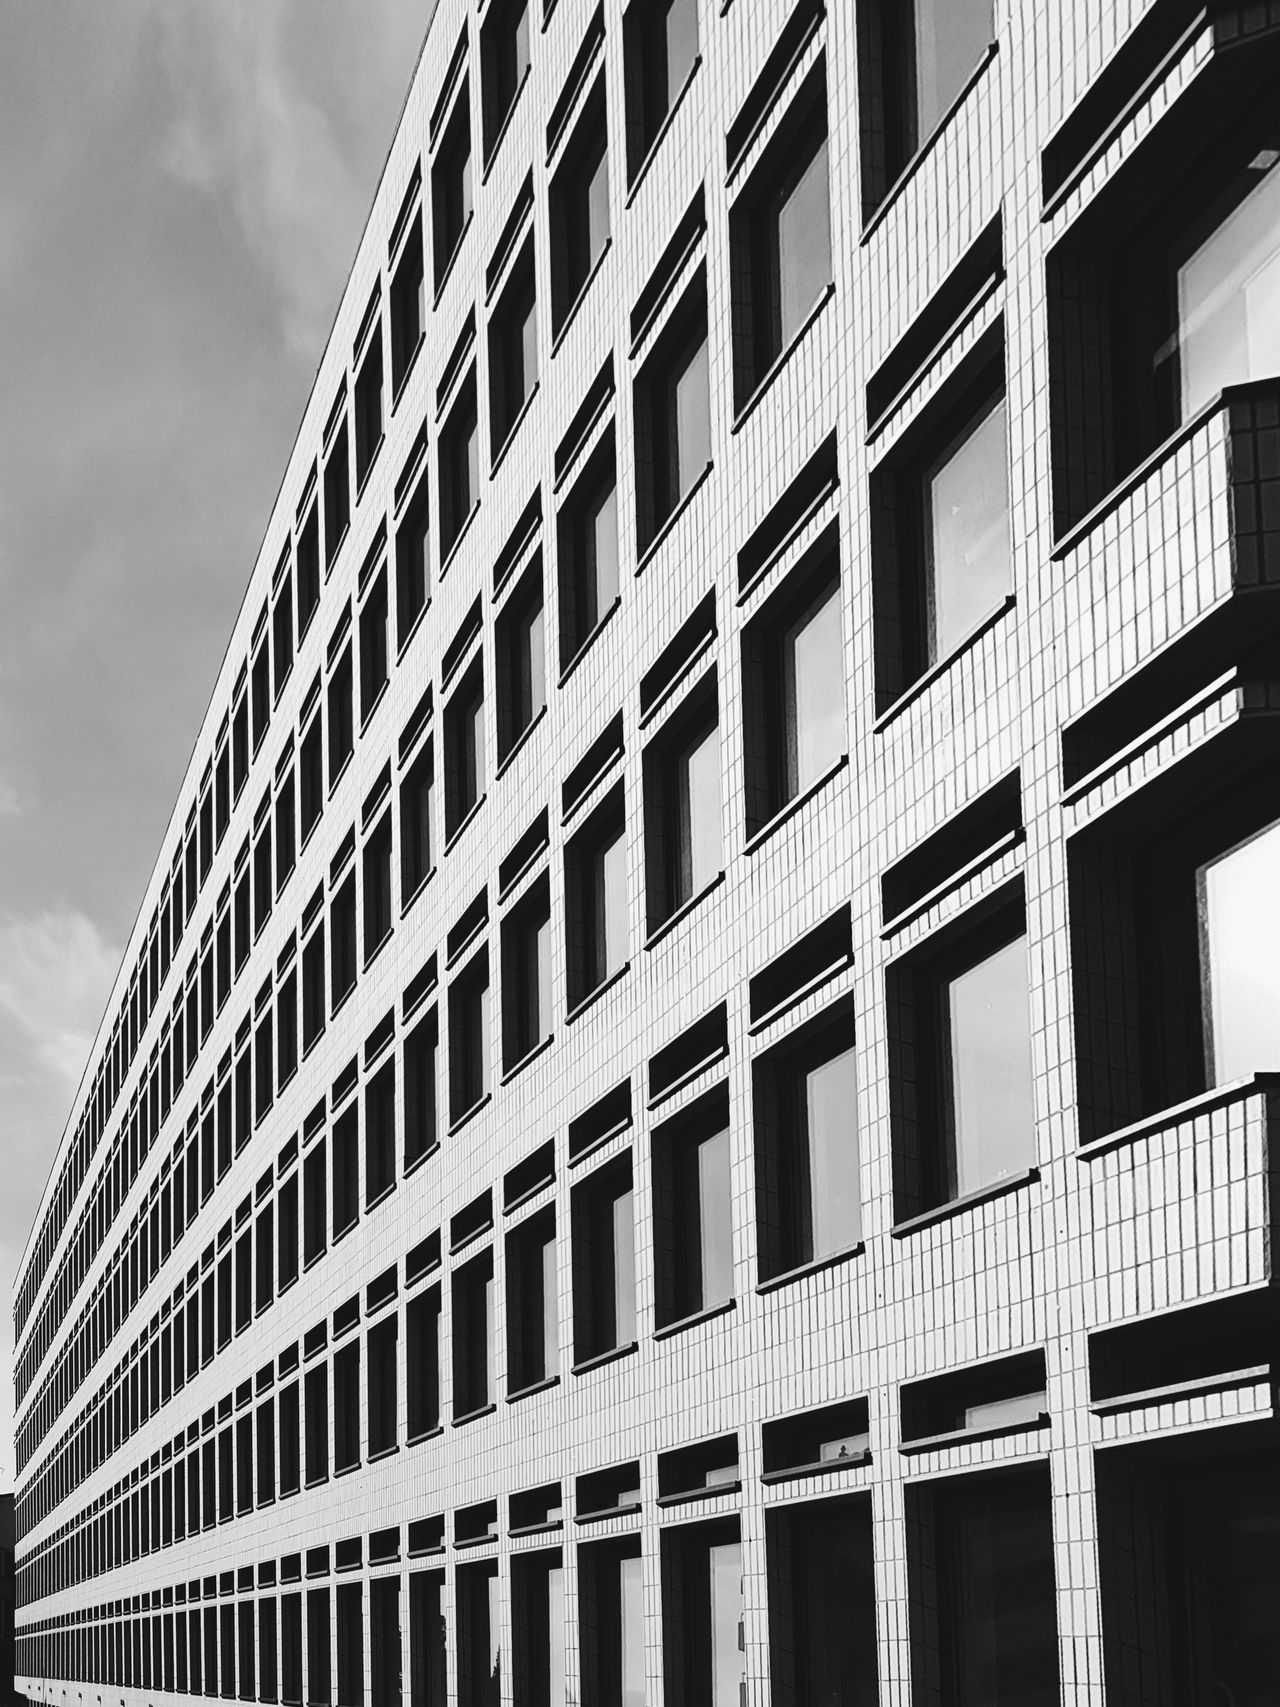 Just another boring office building. Shoreditch, London Architecture Window Building Exterior Built Structure Façade Modern City No People Outdoors Skyscraper Day Sky Monochrome Photography Architecture Business Finance And Industry City Cityscape Illuminated City Street Low Angle View Modern City Life Street Photography London